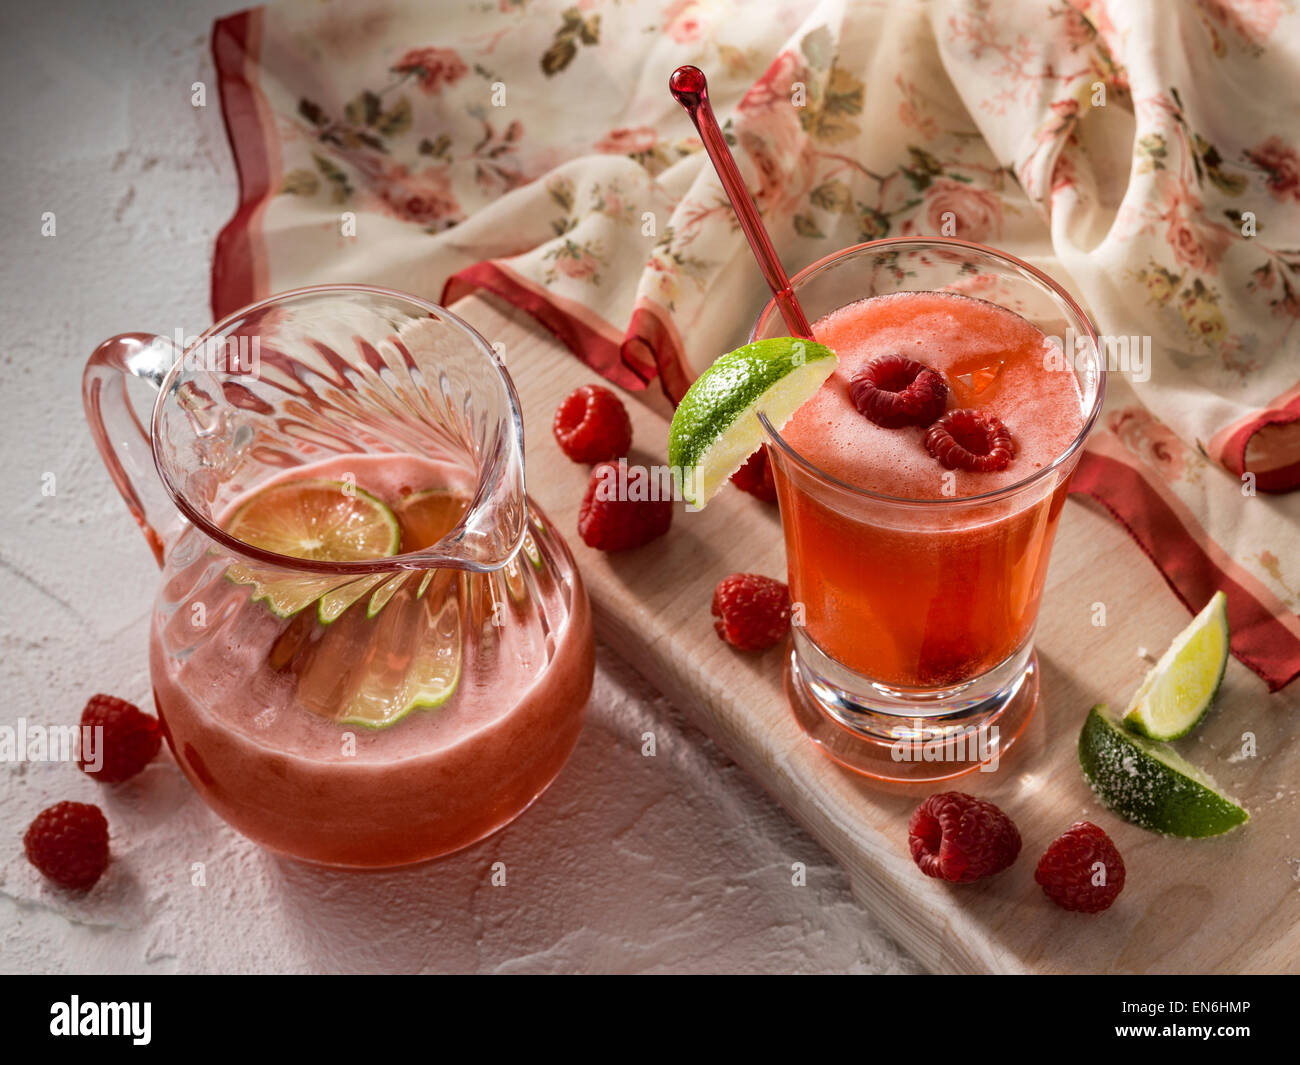 Raspberry lime spa water - Stock Image